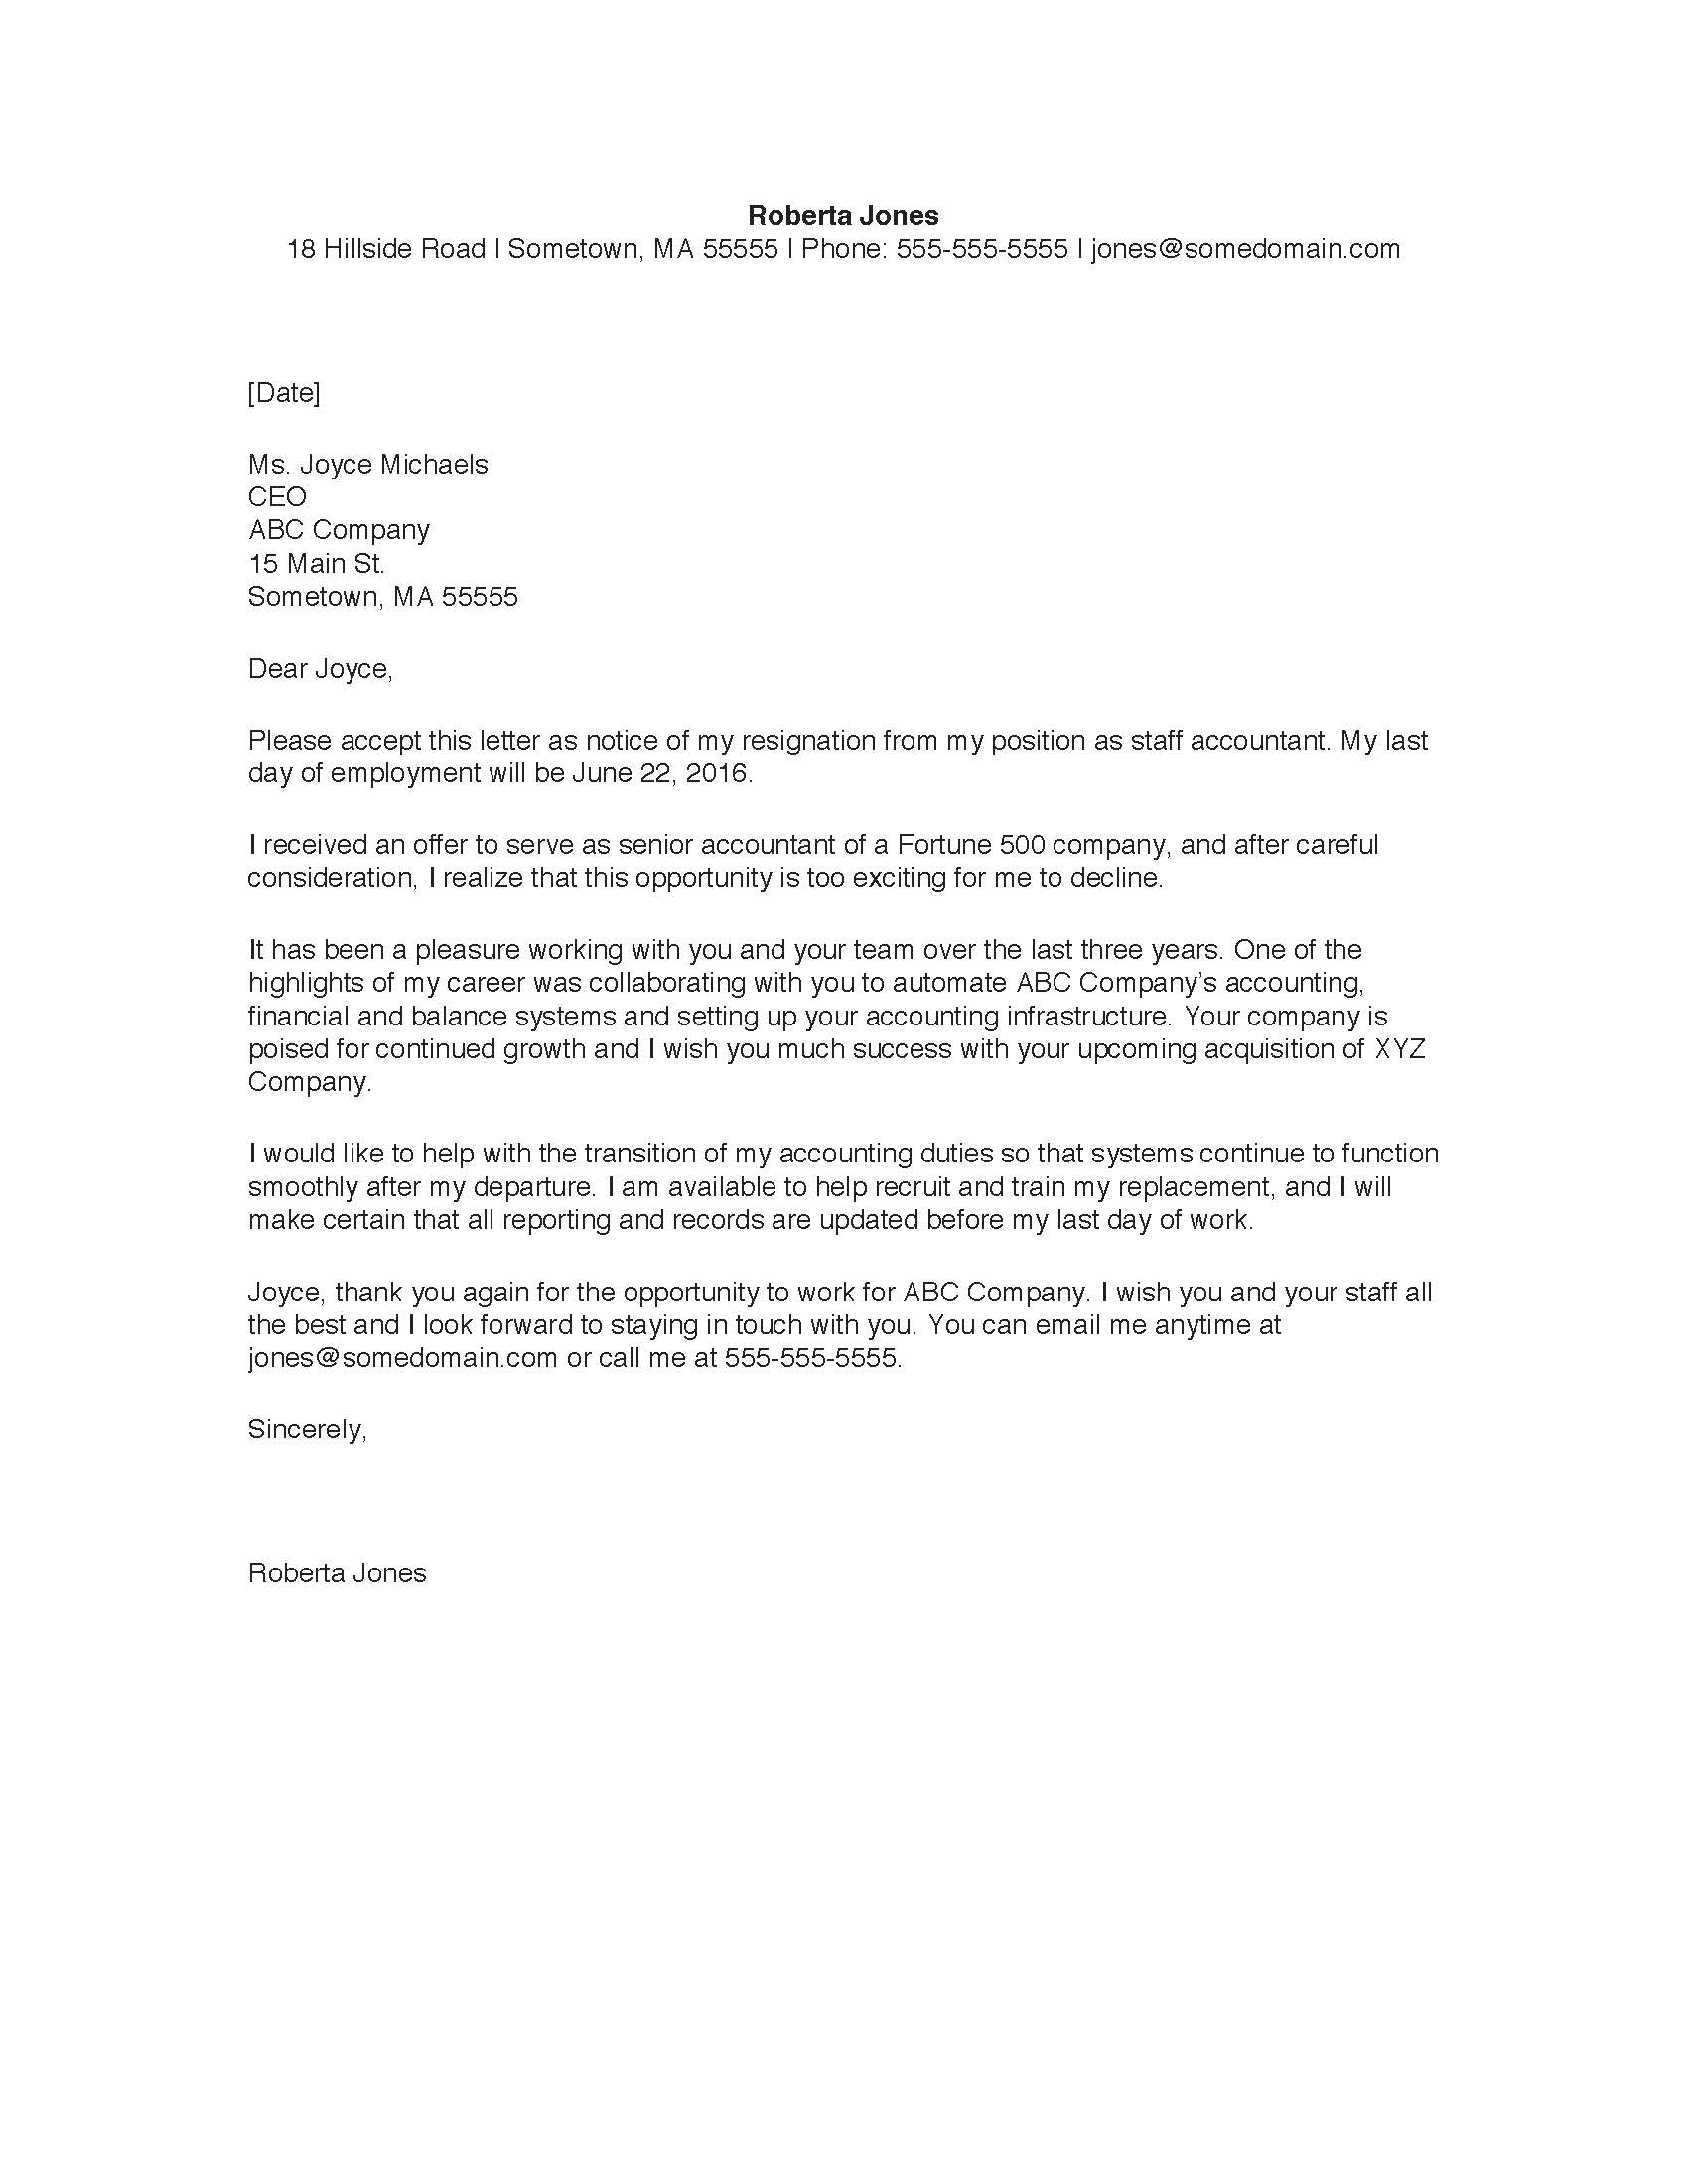 copy of a resignation letter   Yelom.myphonecompany.co